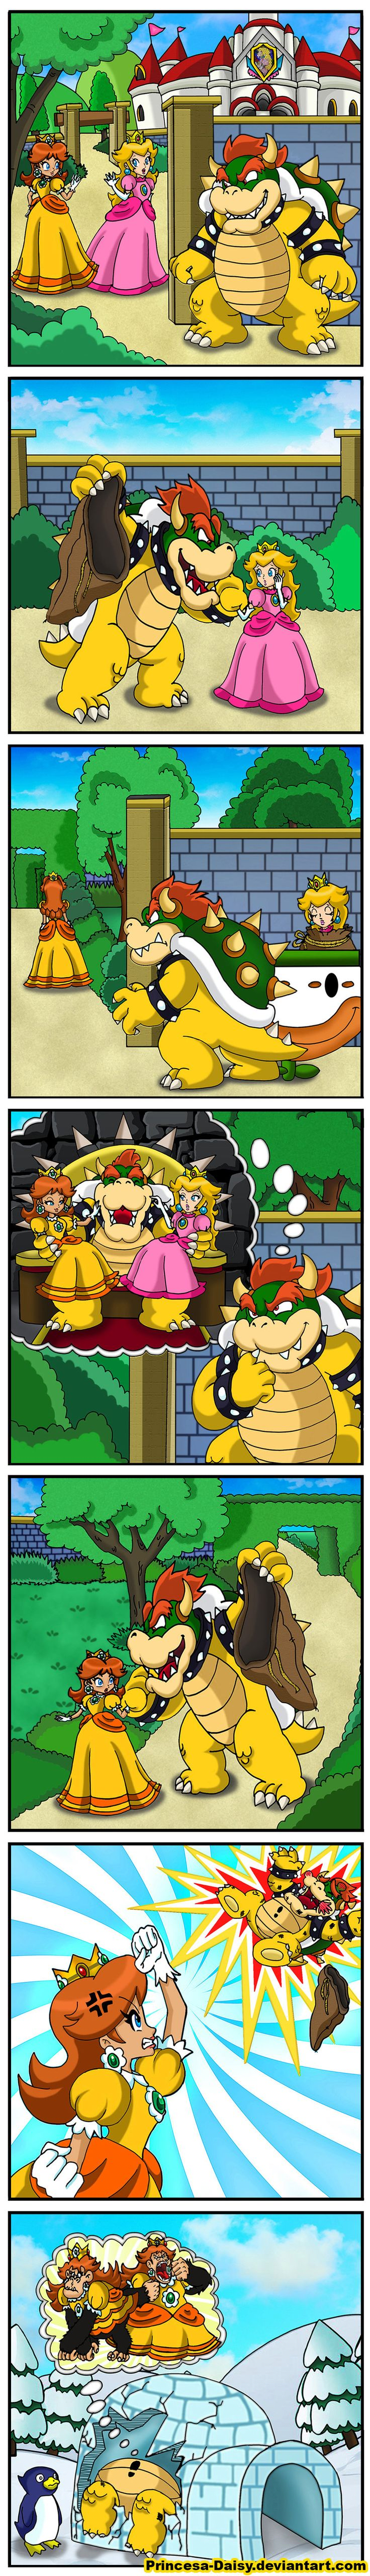 Bowser's ambition by Princess-Daisy